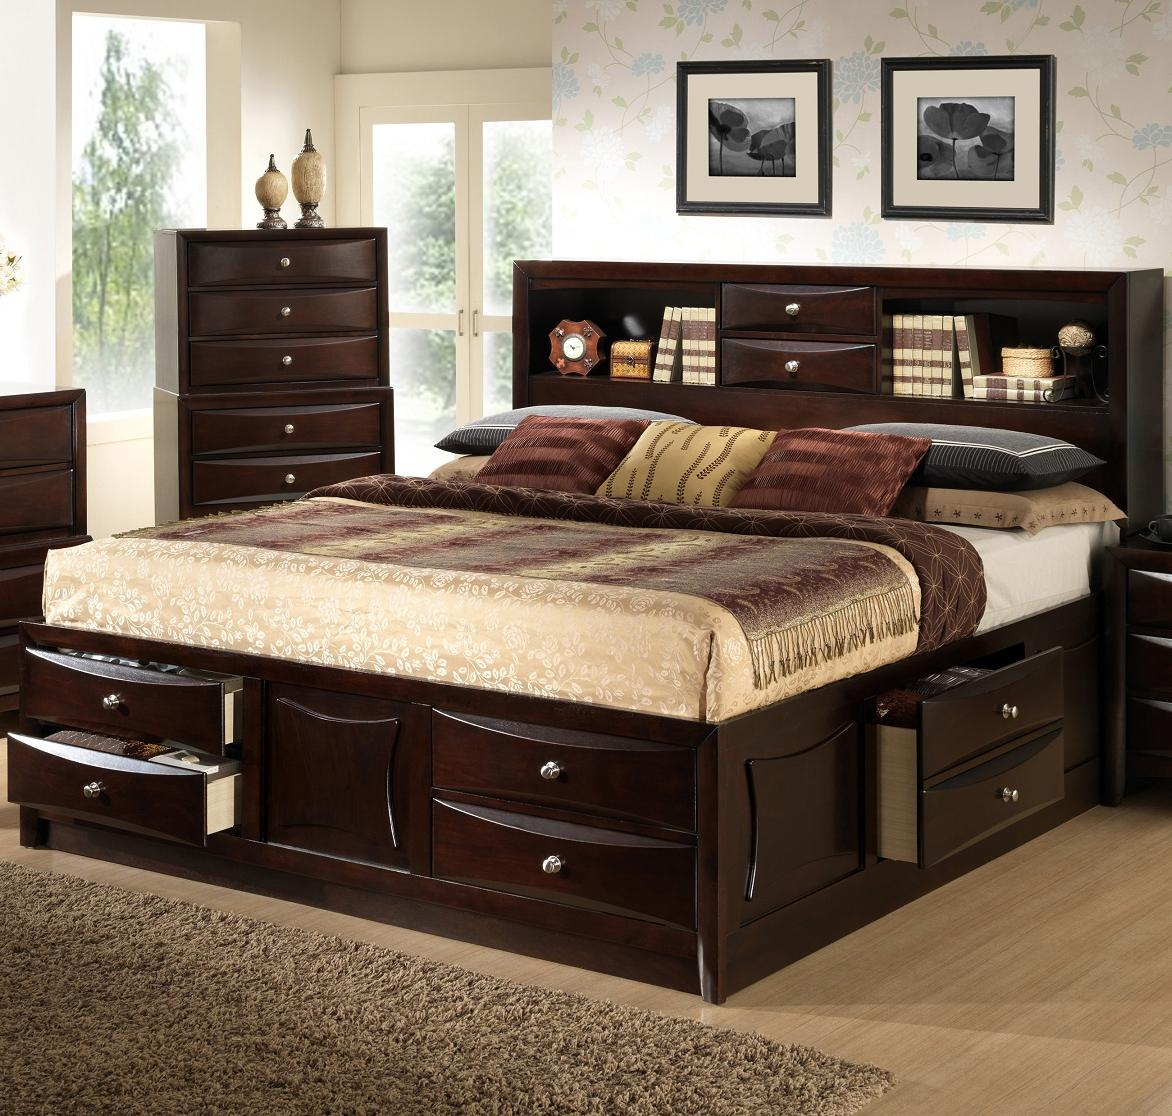 C0172 Queen Storage Bed by Lifestyle at Beck's Furniture